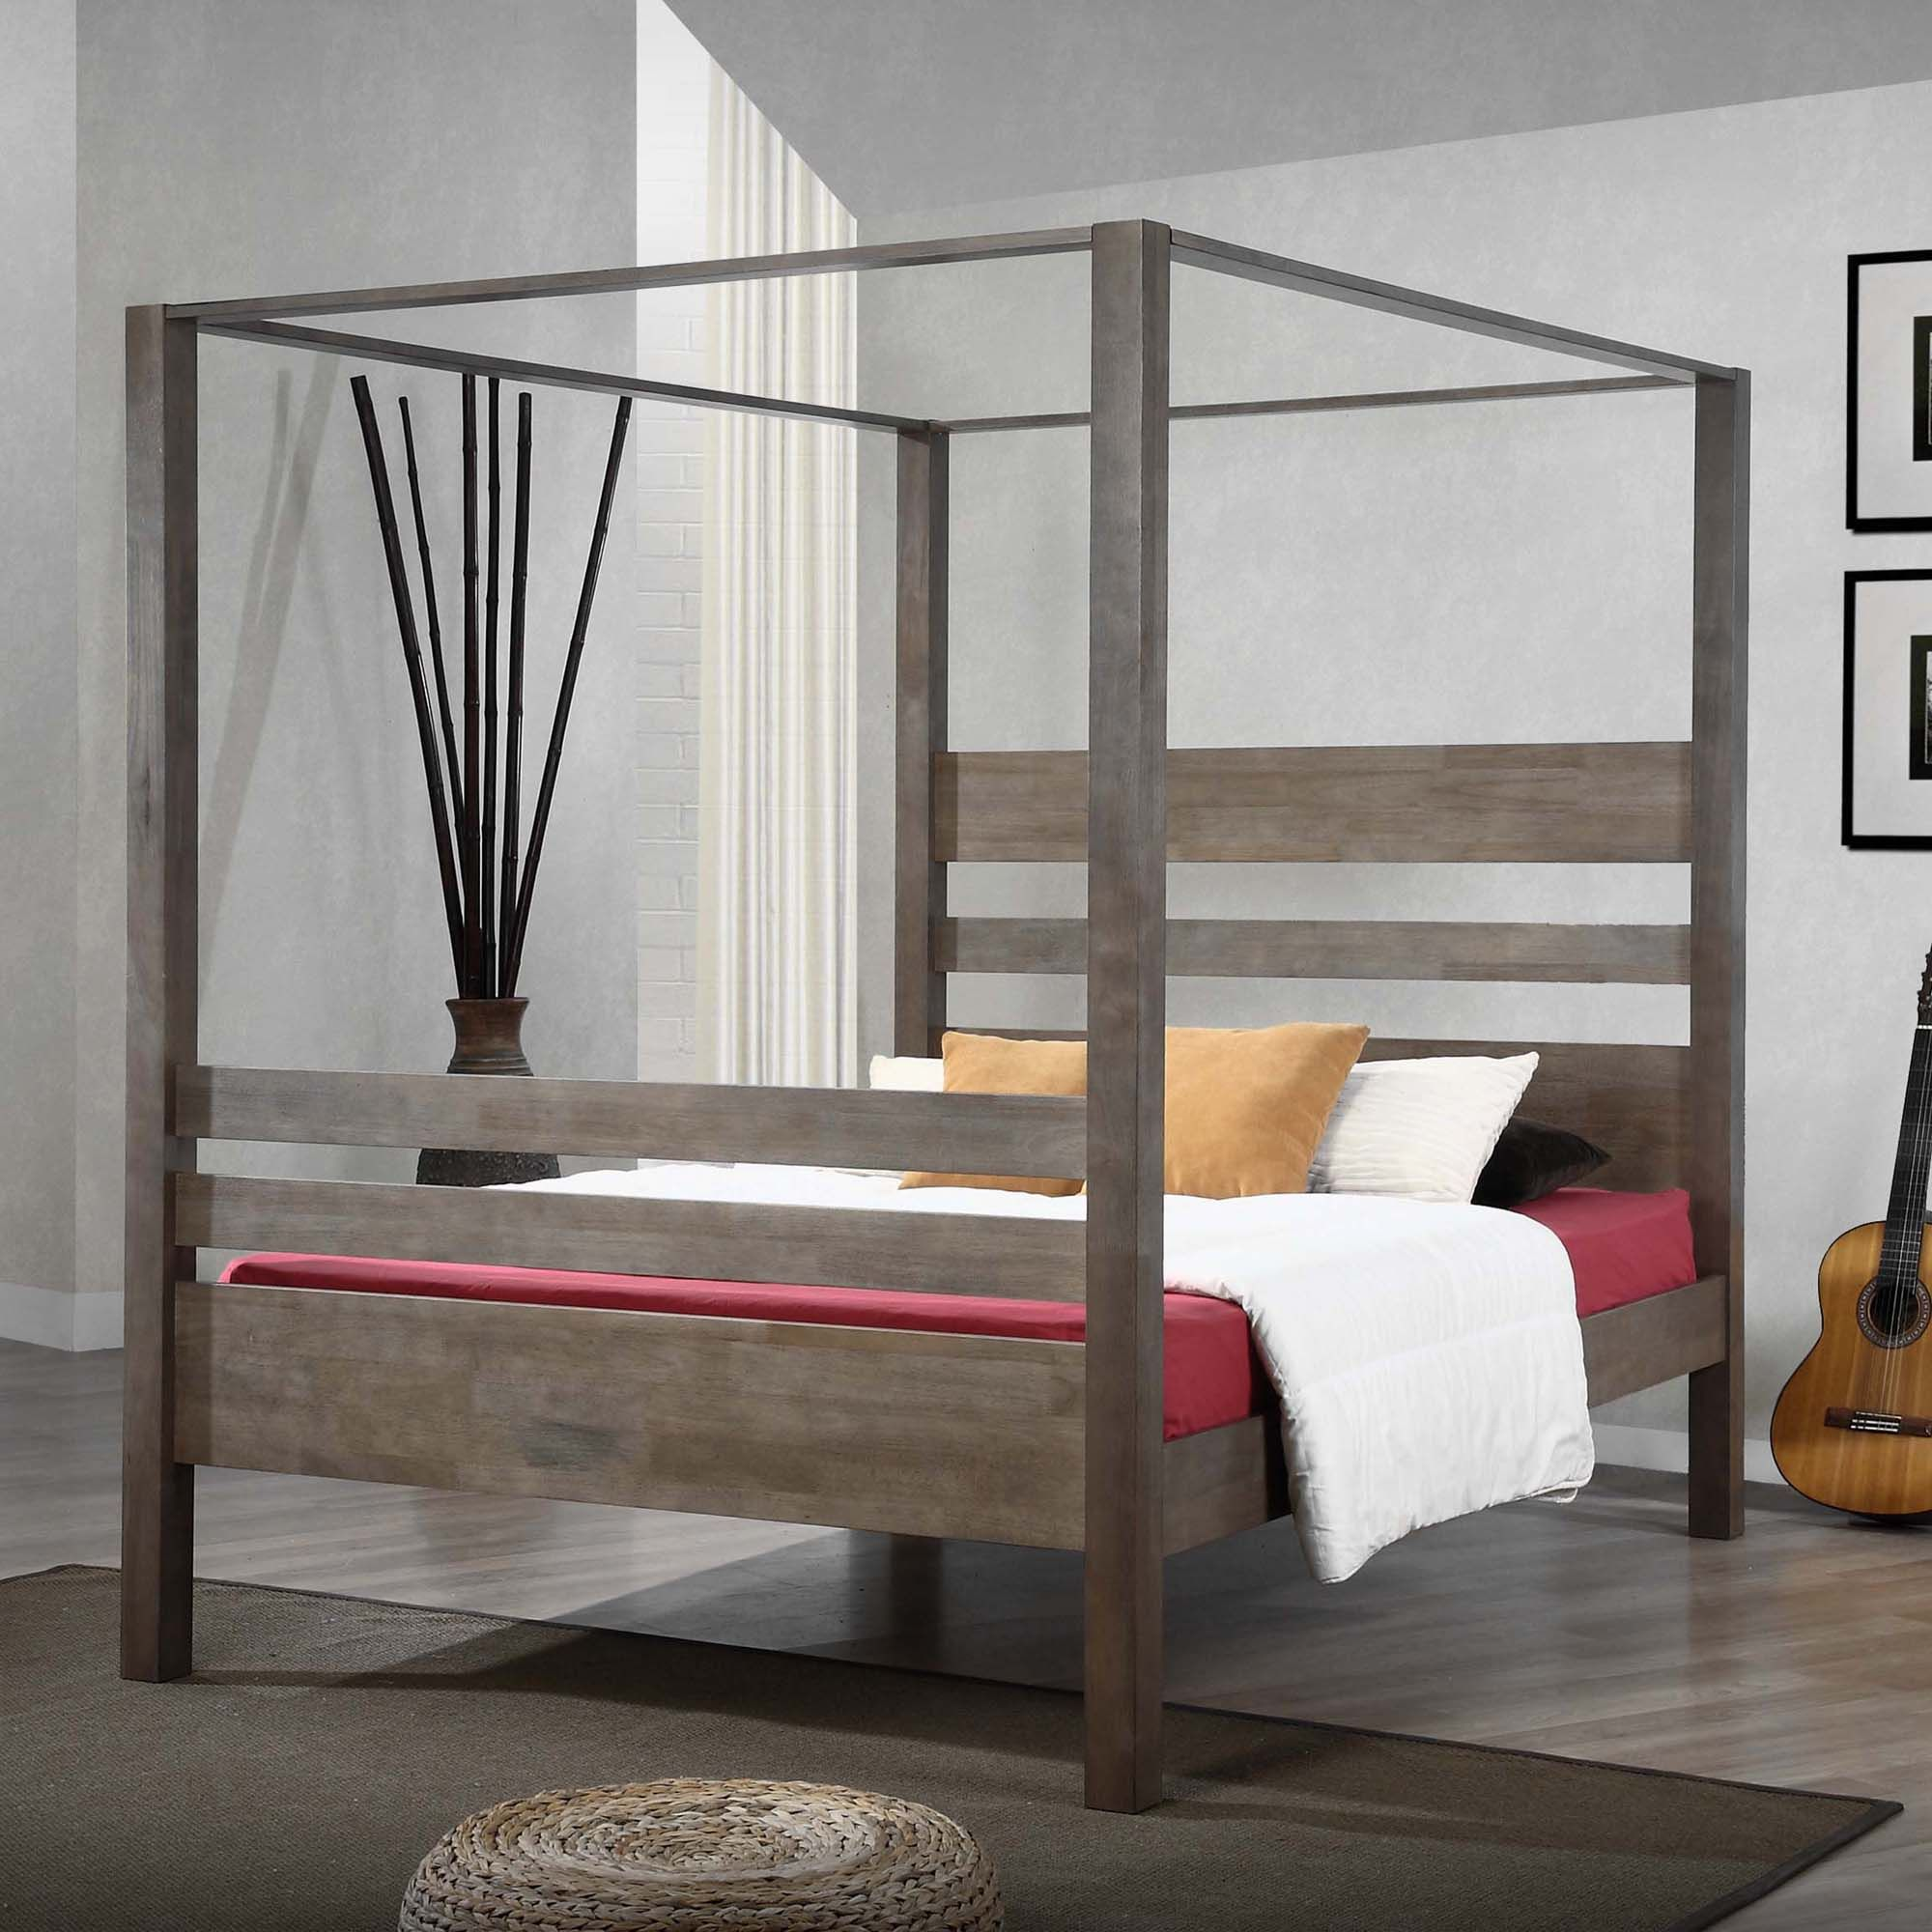 Marion Charcoal Grey Queen Canopy Bed - Overstock Shopping - Great Deals on Beds & This Marion canopy bed is sure to add a distinctive look to any ...